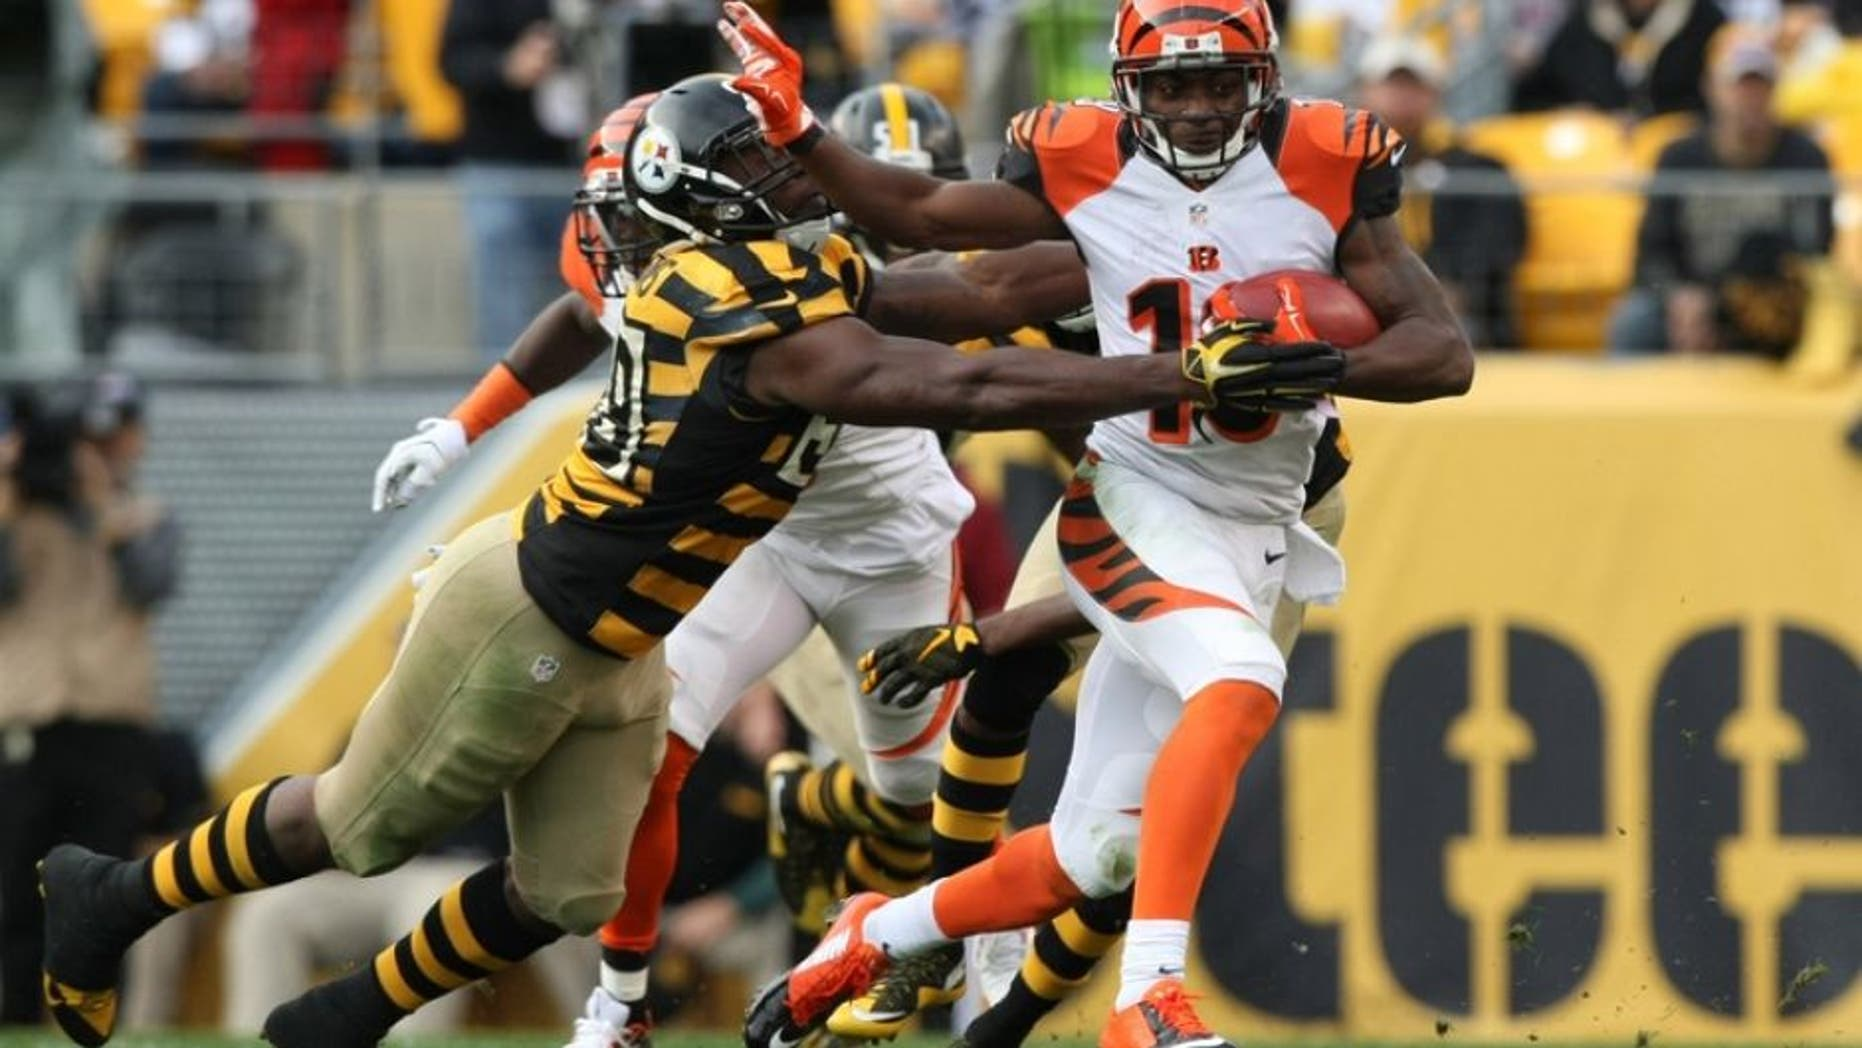 Nov 1, 2015; Pittsburgh, PA, USA; Cincinnati Bengals wide receiver Brandon Tate (19) runs the ball past Pittsburgh Steelers linebacker Vince Williams (98) during the second half at Heinz Field. The Bengals won the game 16-10. Mandatory Credit: Jason Bridge-USA TODAY Sports